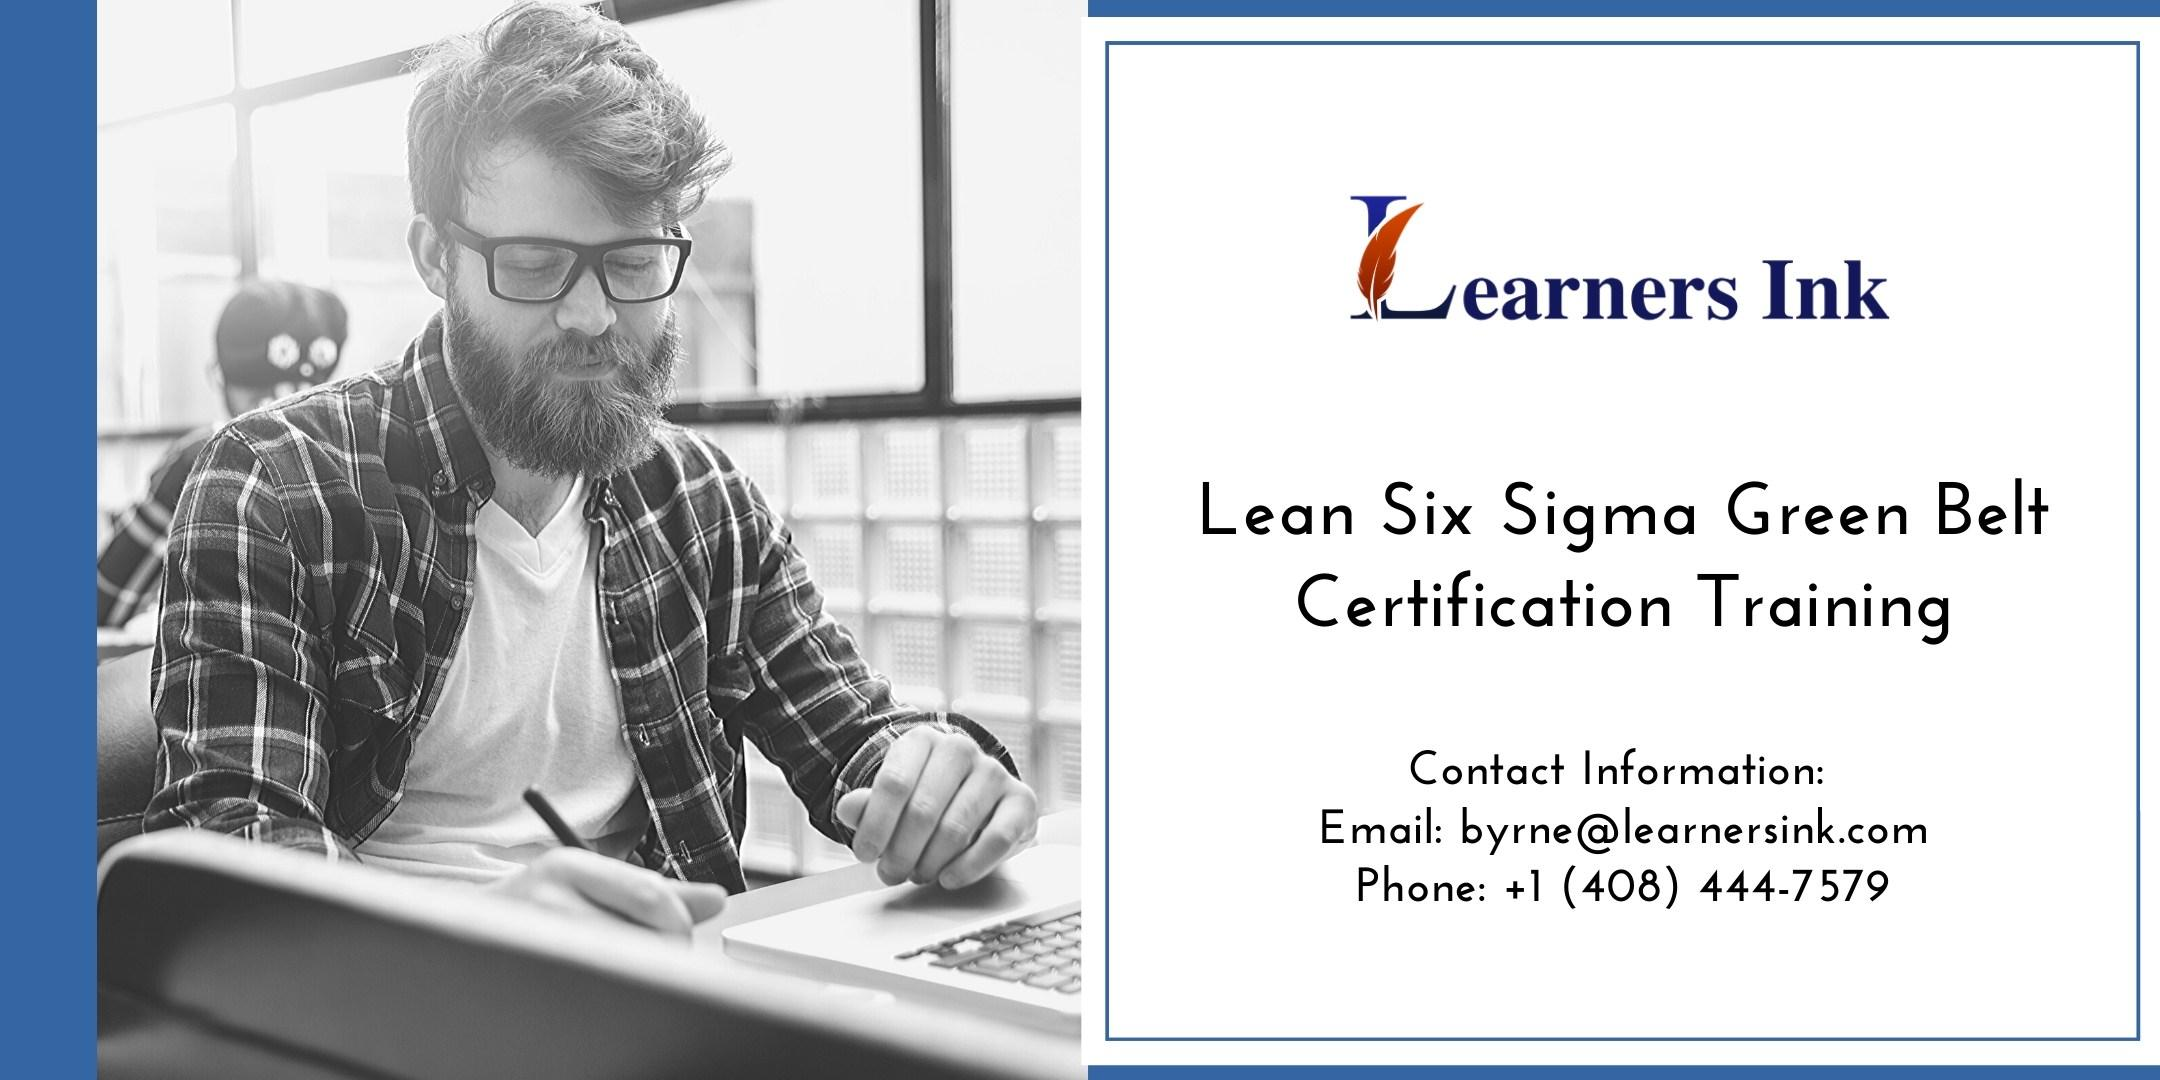 Lean Six Sigma Green Belt Certification Training Course (LSSGB) in Regina